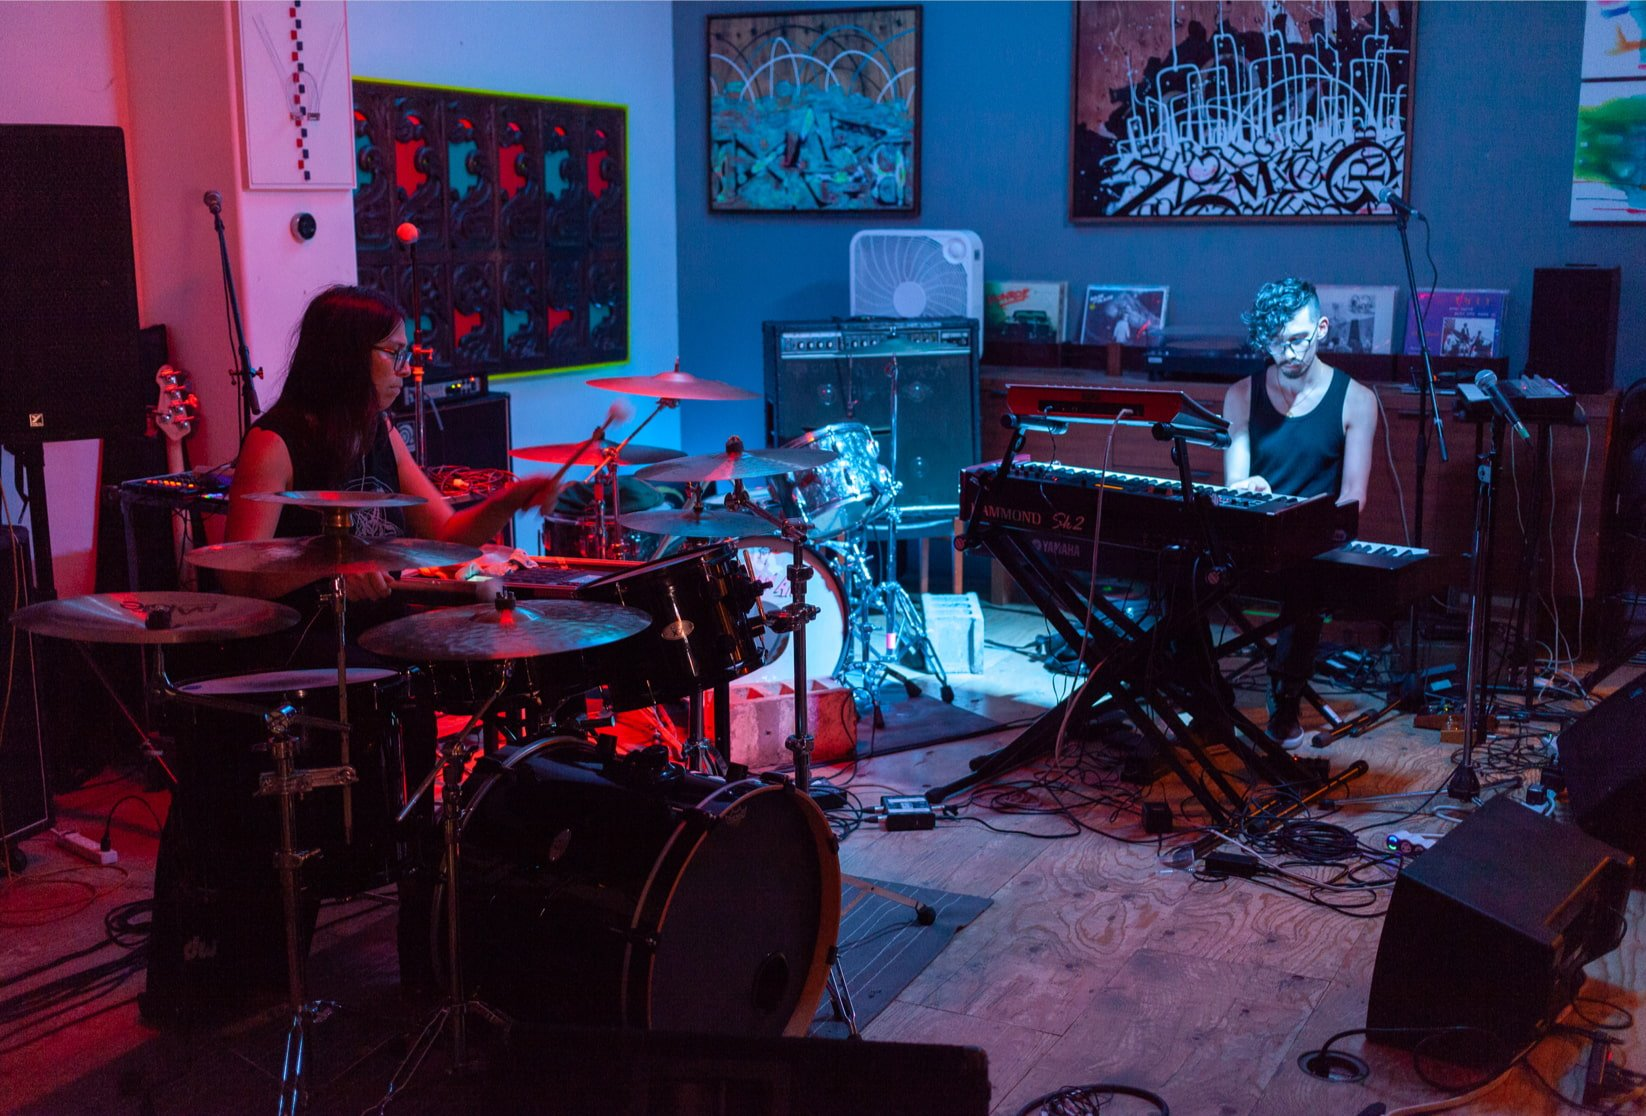 A drummer and a keyboardist in performance in a small room with many paintings.